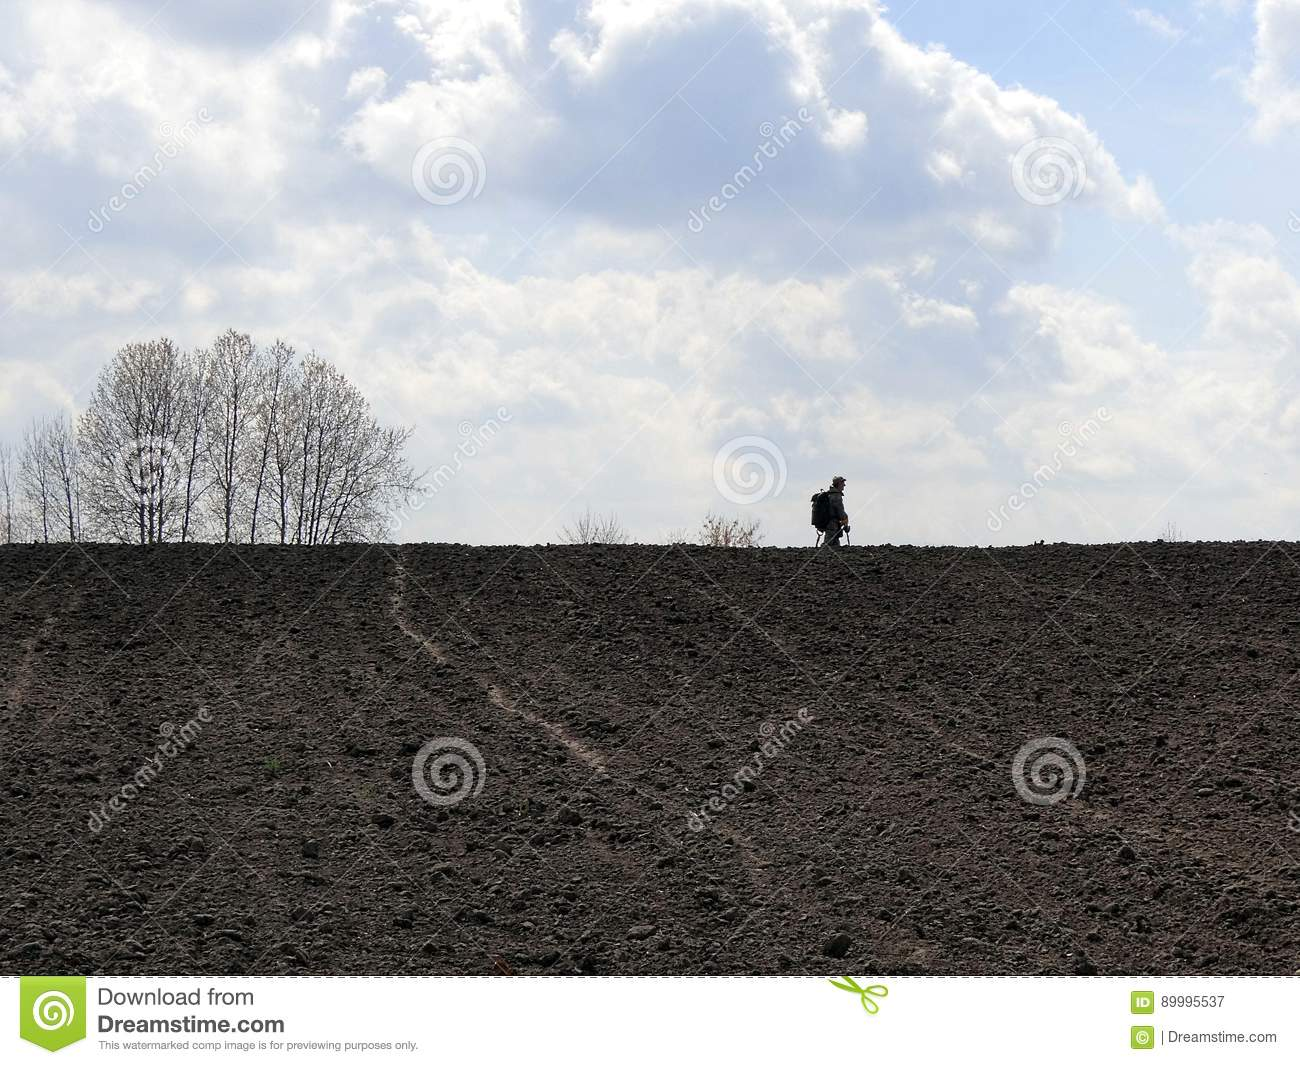 Jew Detector: A Man With A Metal Detector On A Plowed Field, Against A